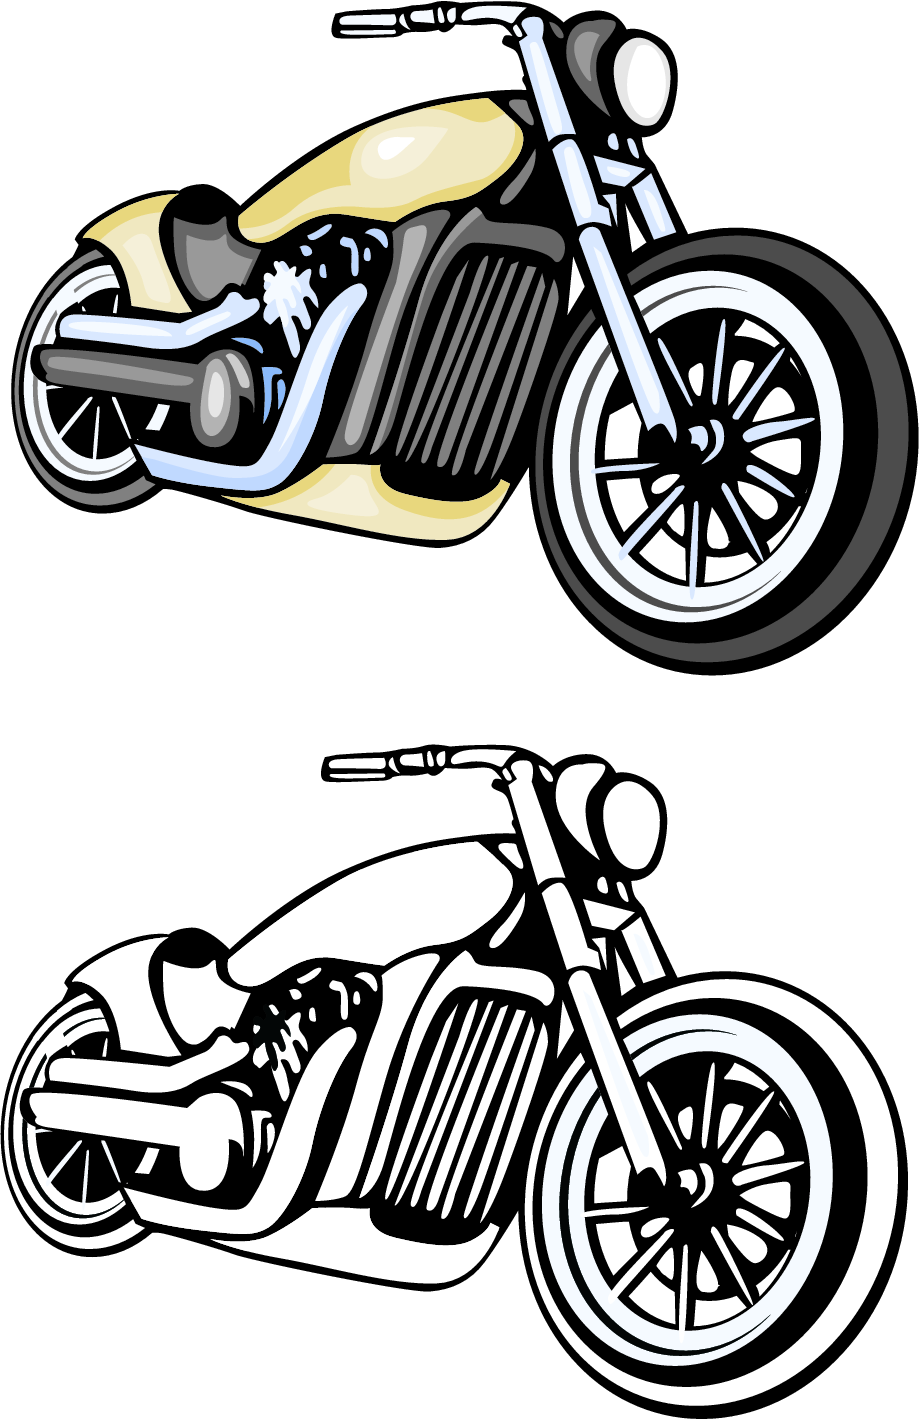 Free images motorcycles download. Motorcycle clipart simple